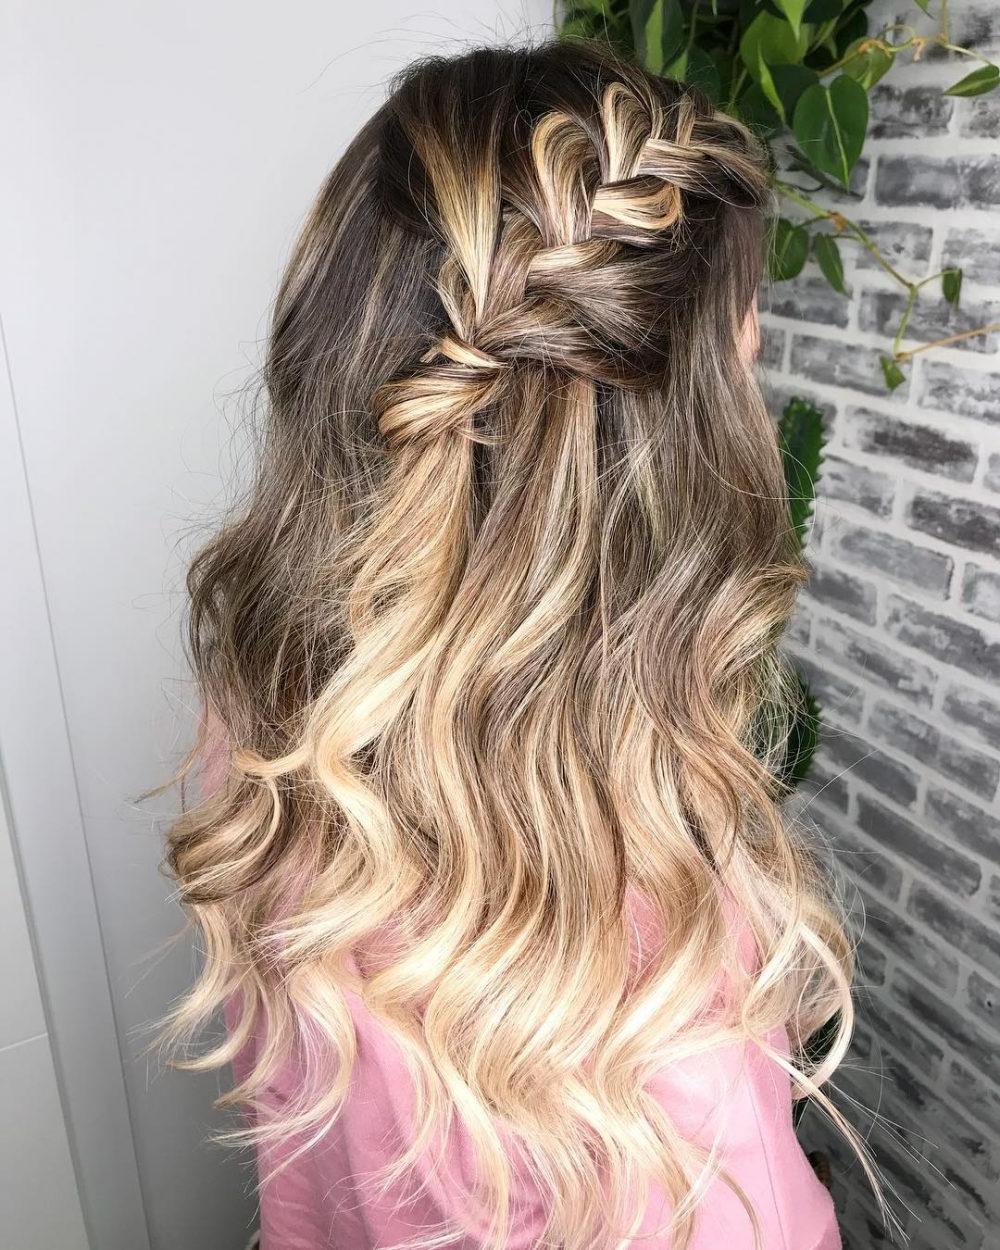 Top 19 Bohemian Hairstyles Trending In 2019 Pertaining To Favorite Chic Bohemian Braid Hairstyles (View 6 of 20)